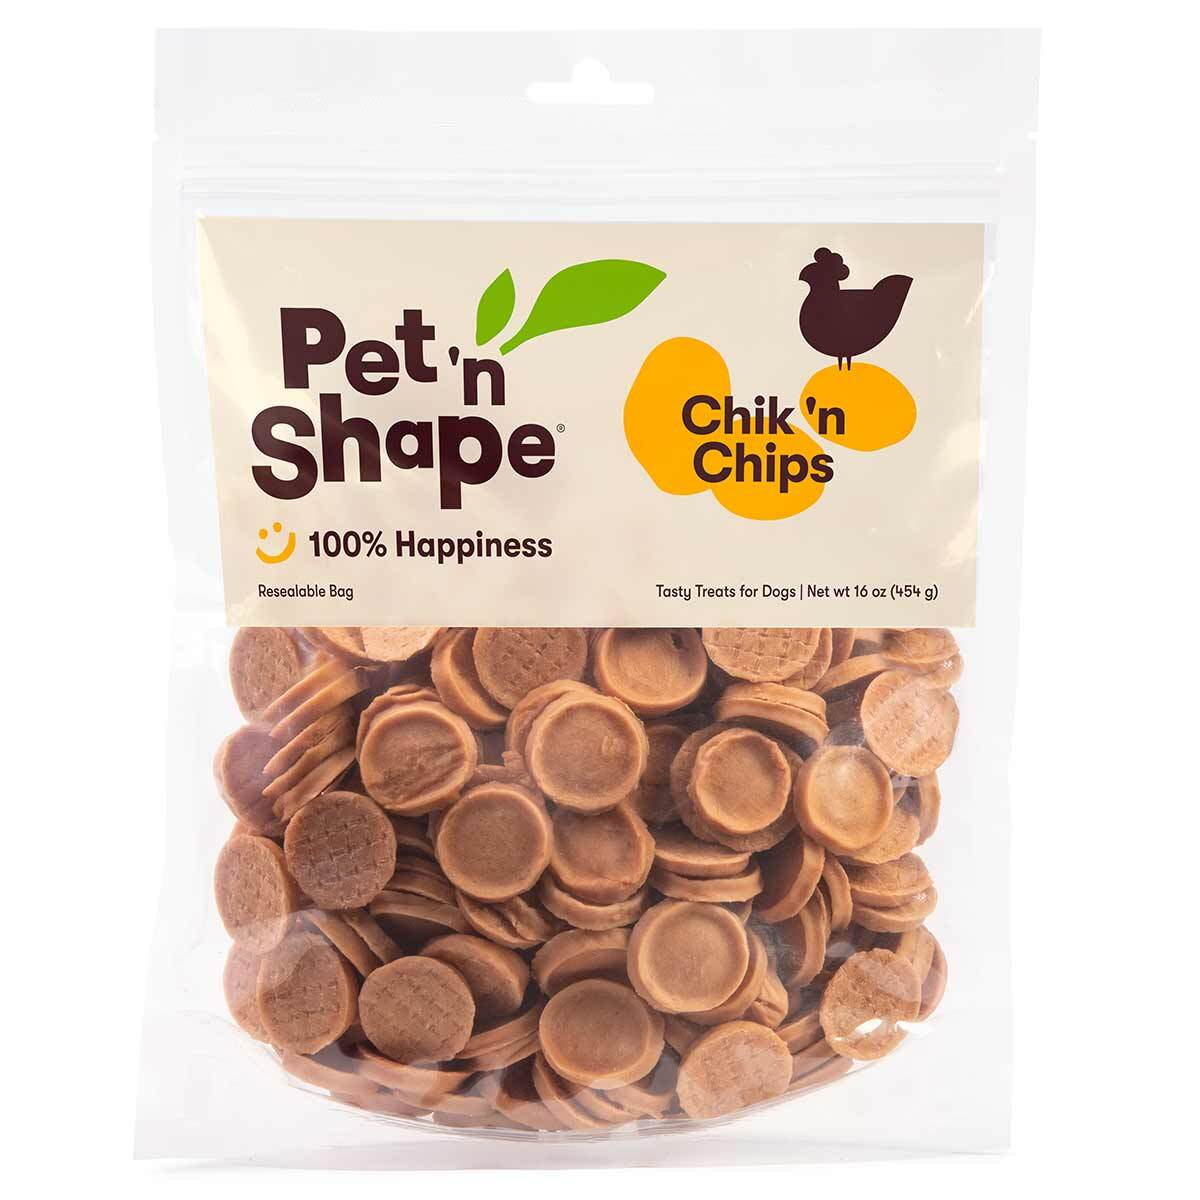 Pet 'n Shape Chik 'n Chips Dog Treats 16 oz